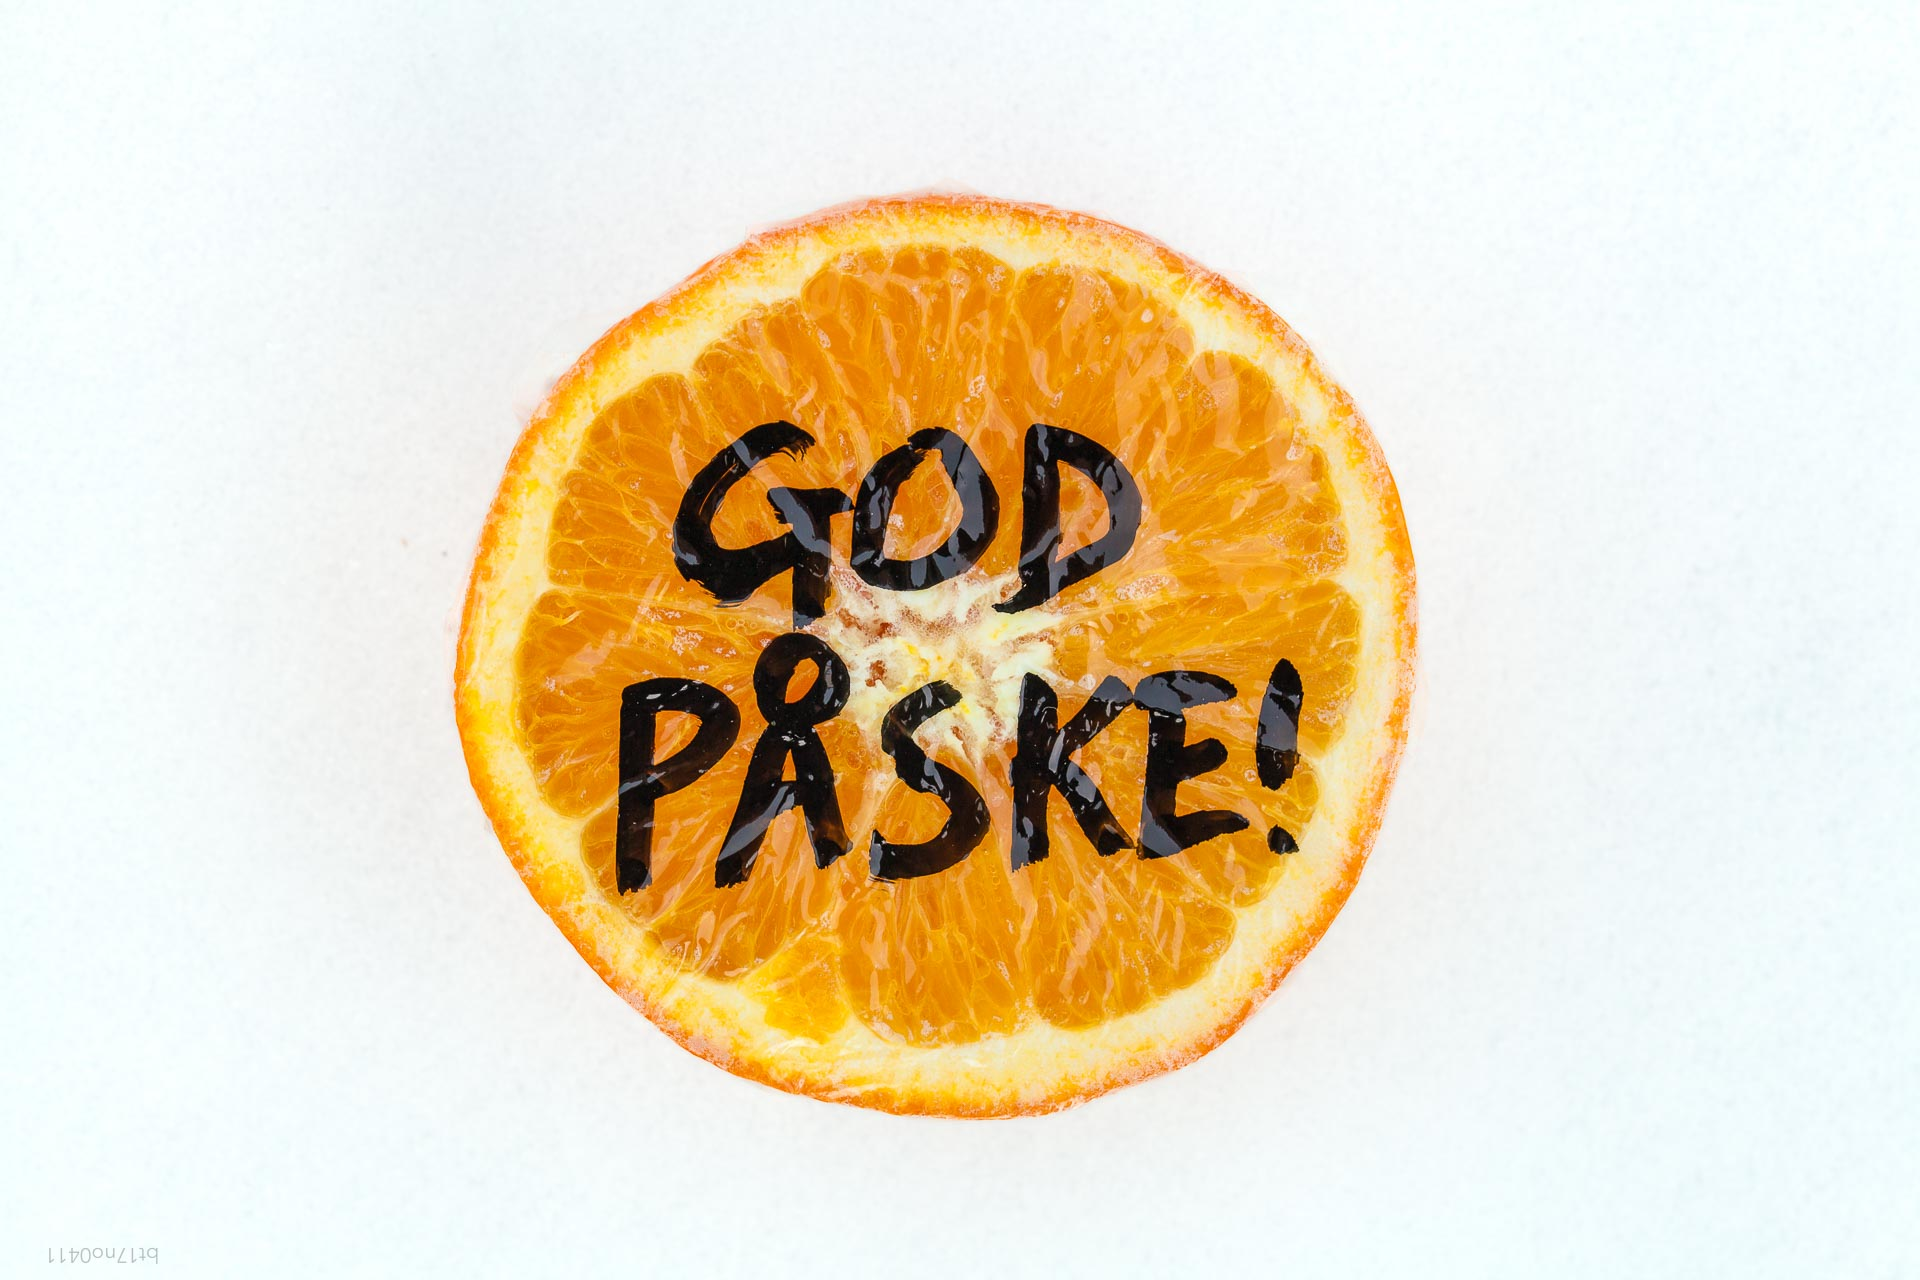 Undertøimagasinet Askim (God påske-appelsin), betalt